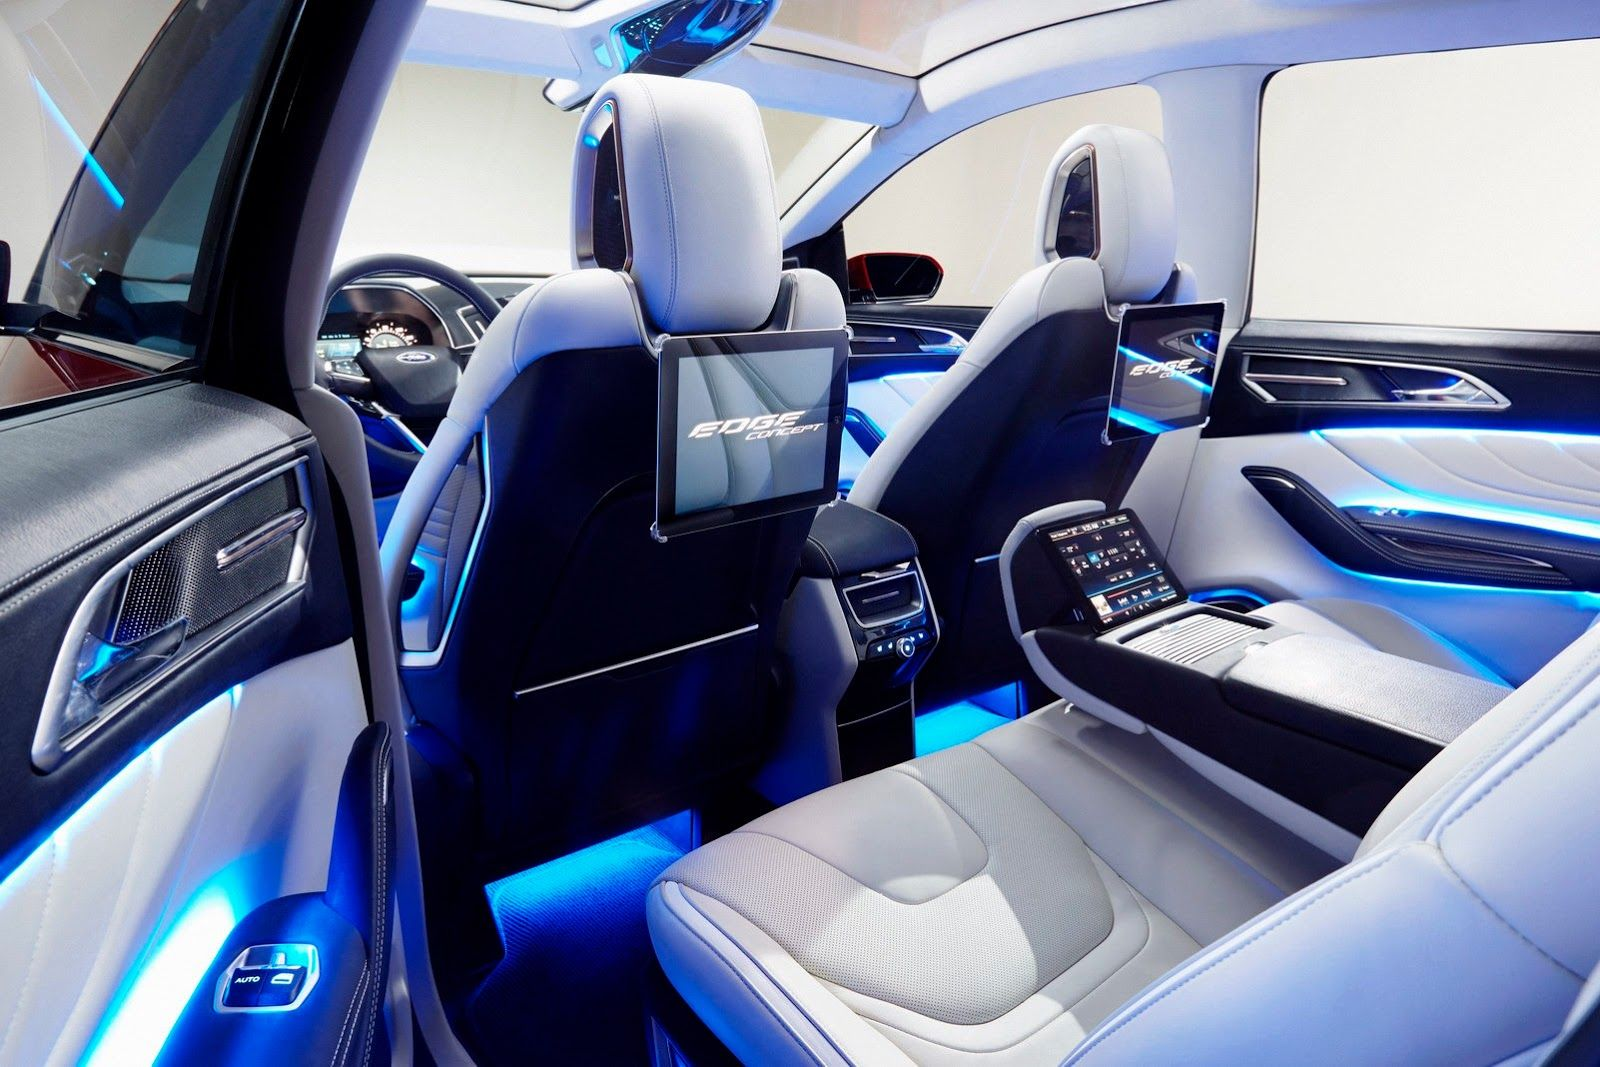 2020 Ford Bronco interior | FORD | Pinterest | Ford bronco, Ford and ...